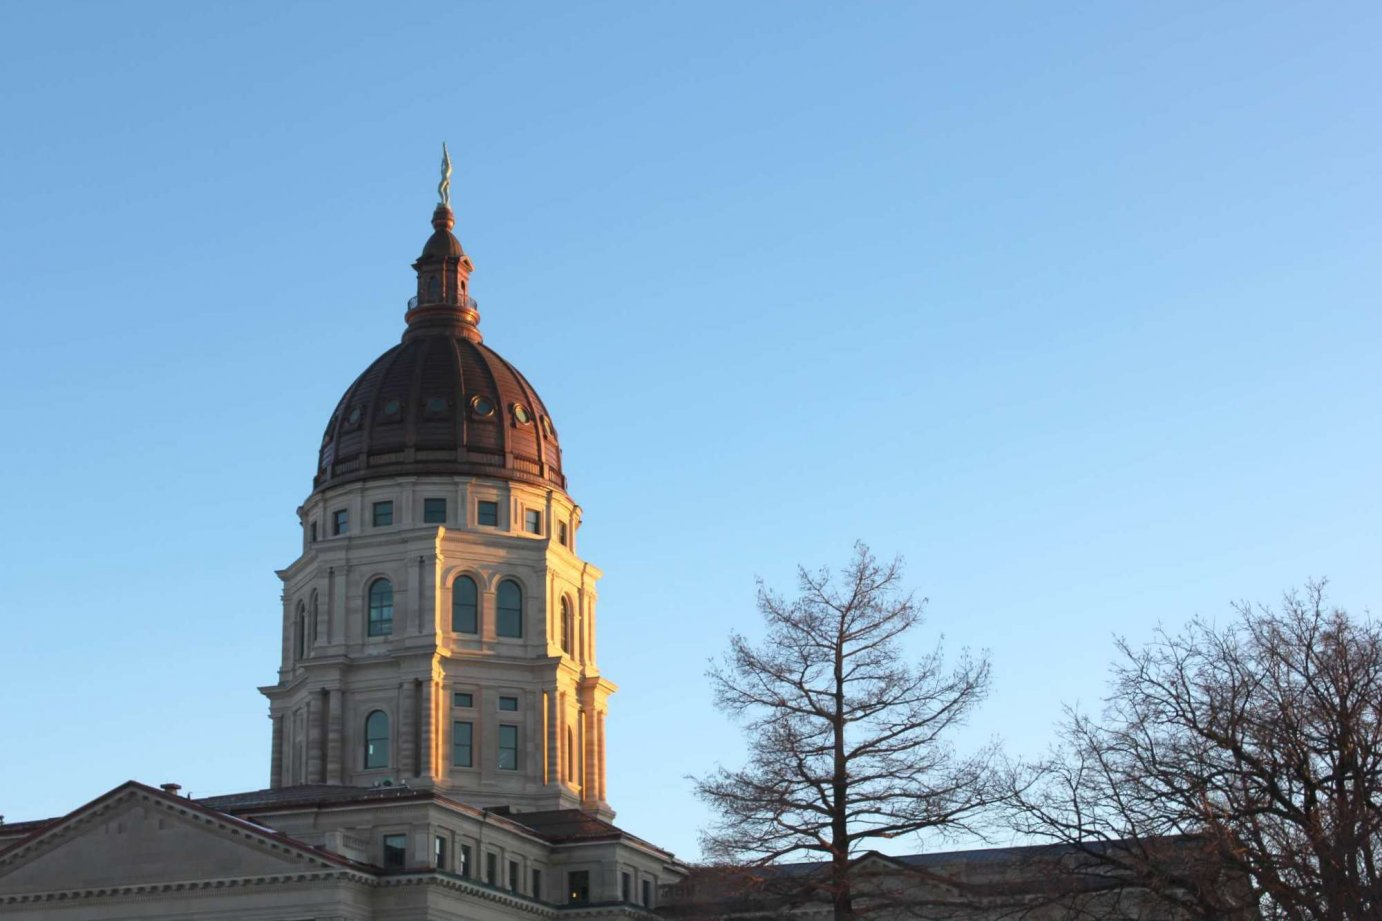 Photo by Stephen Koranda